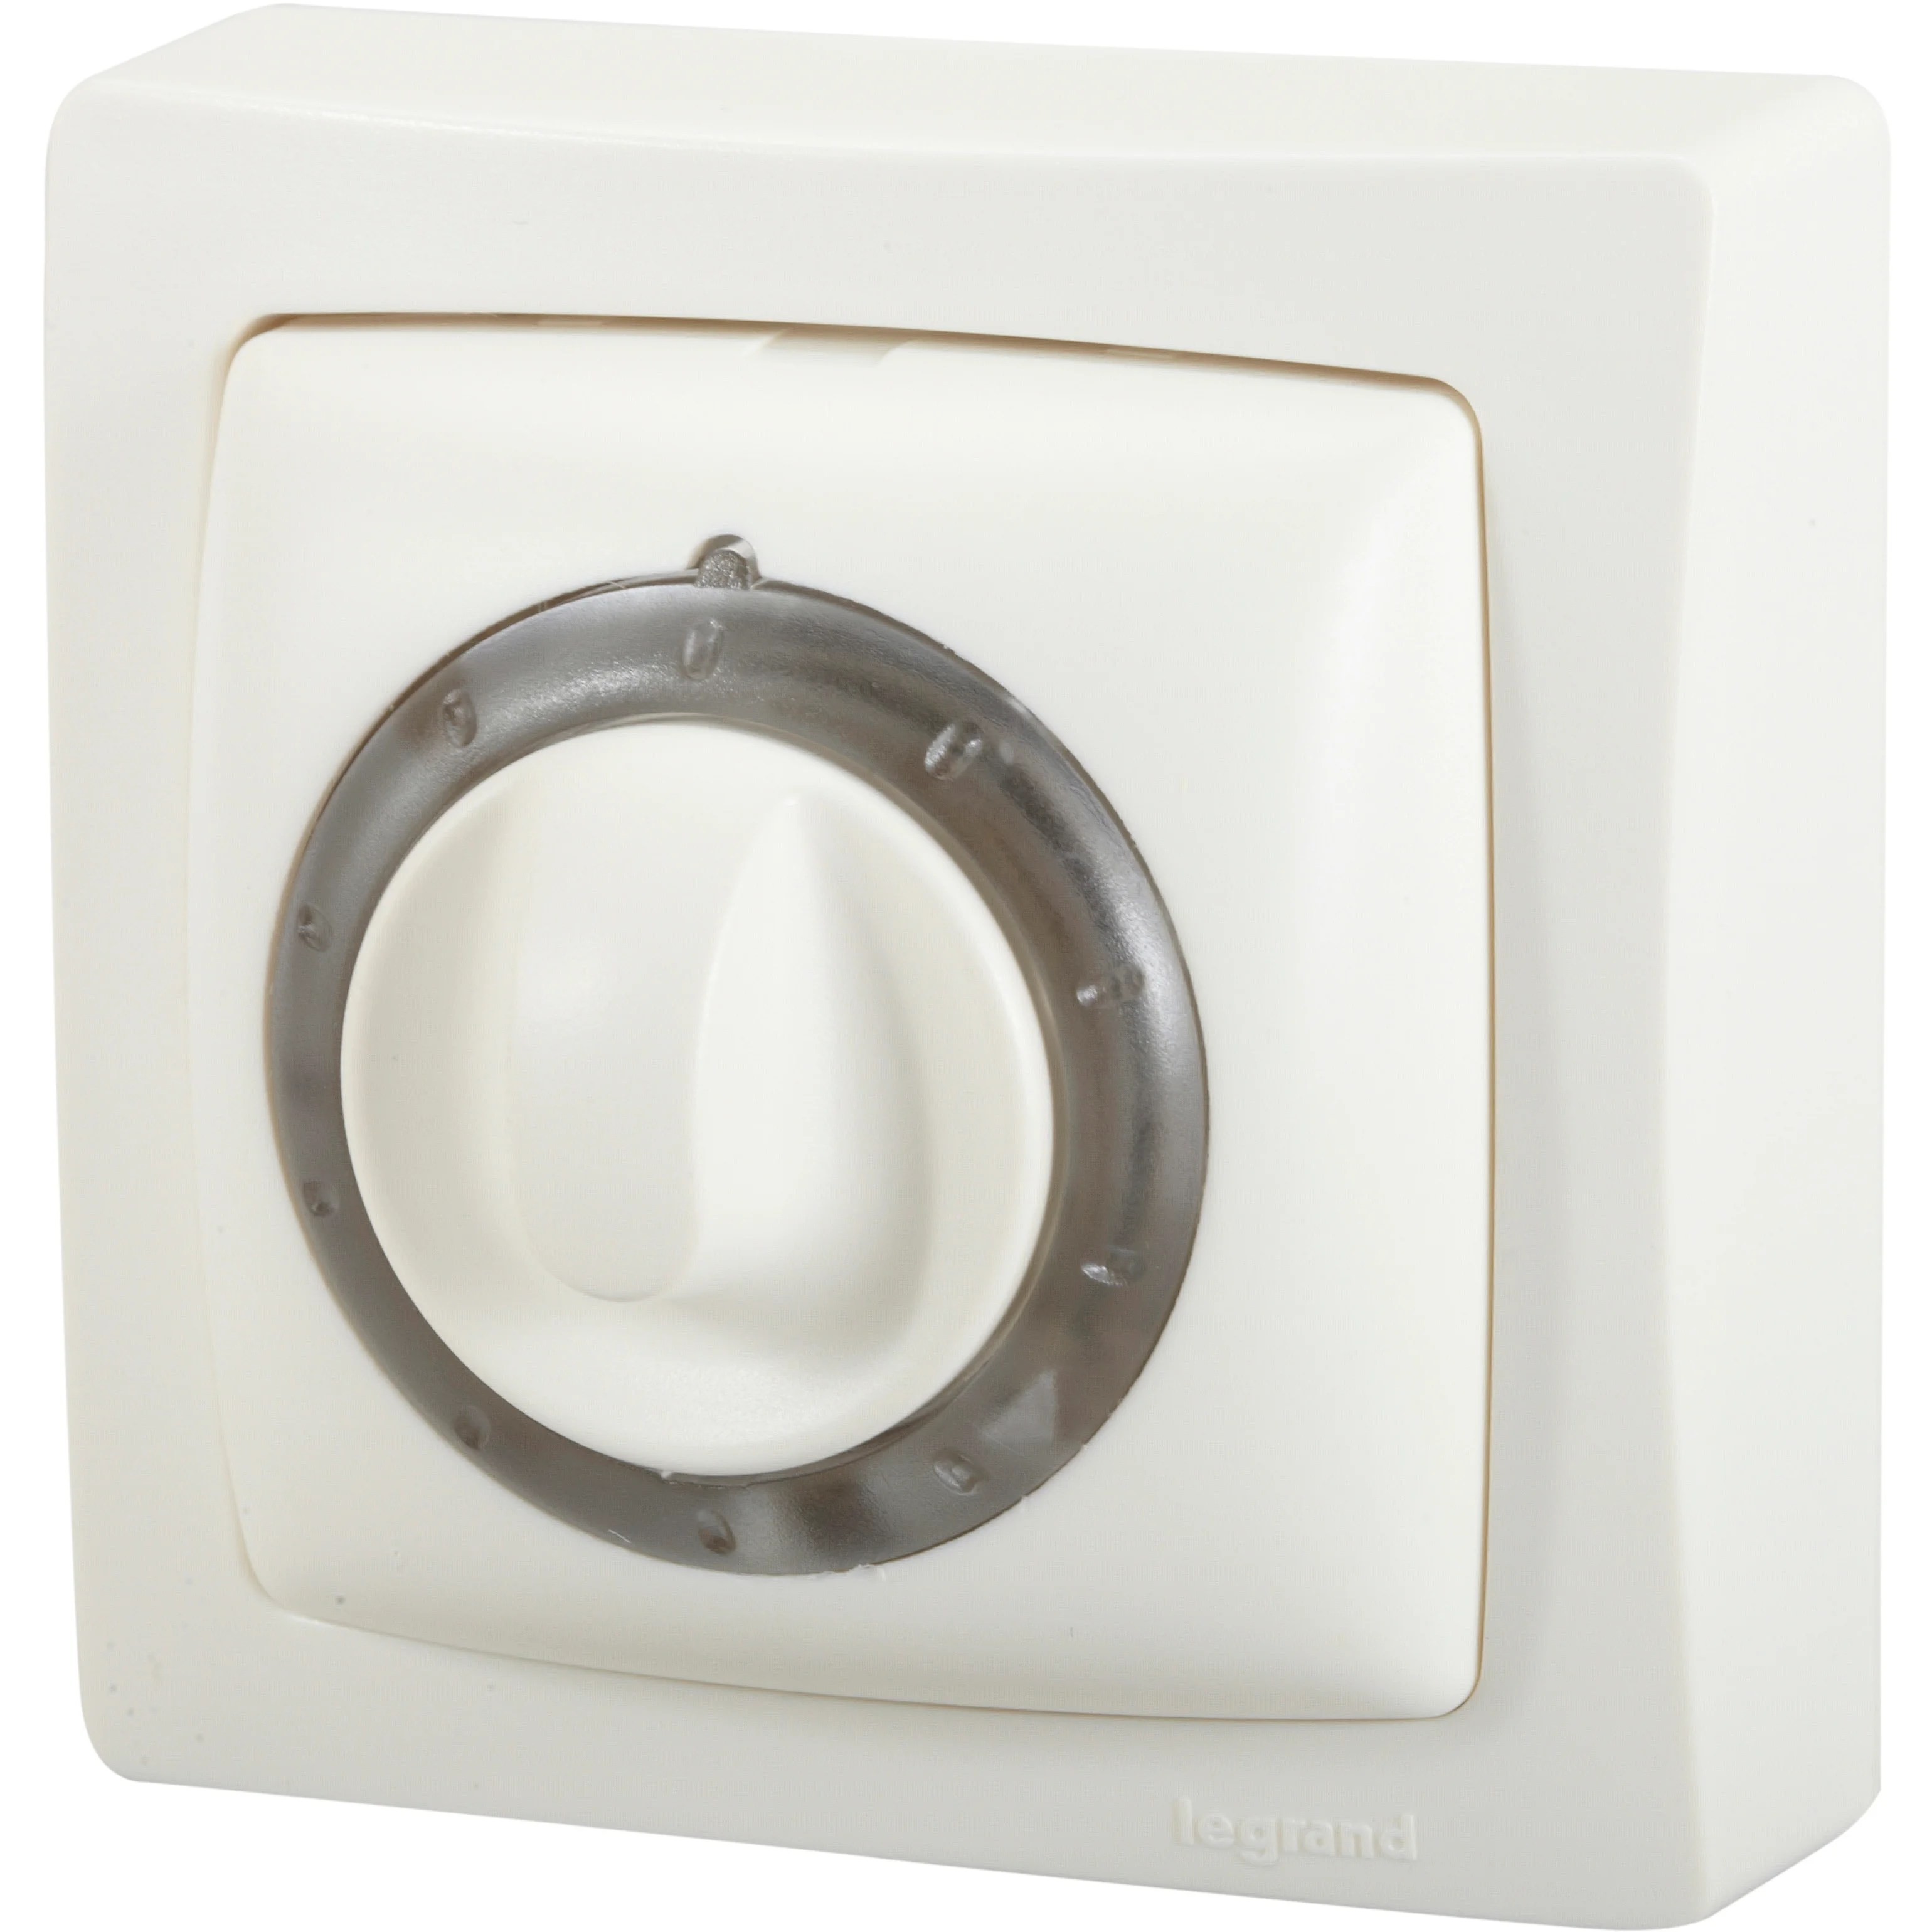 Minuterie Saillie A Voyant Lumineux Complet Legrand Asl Blanc Leroy Merlin